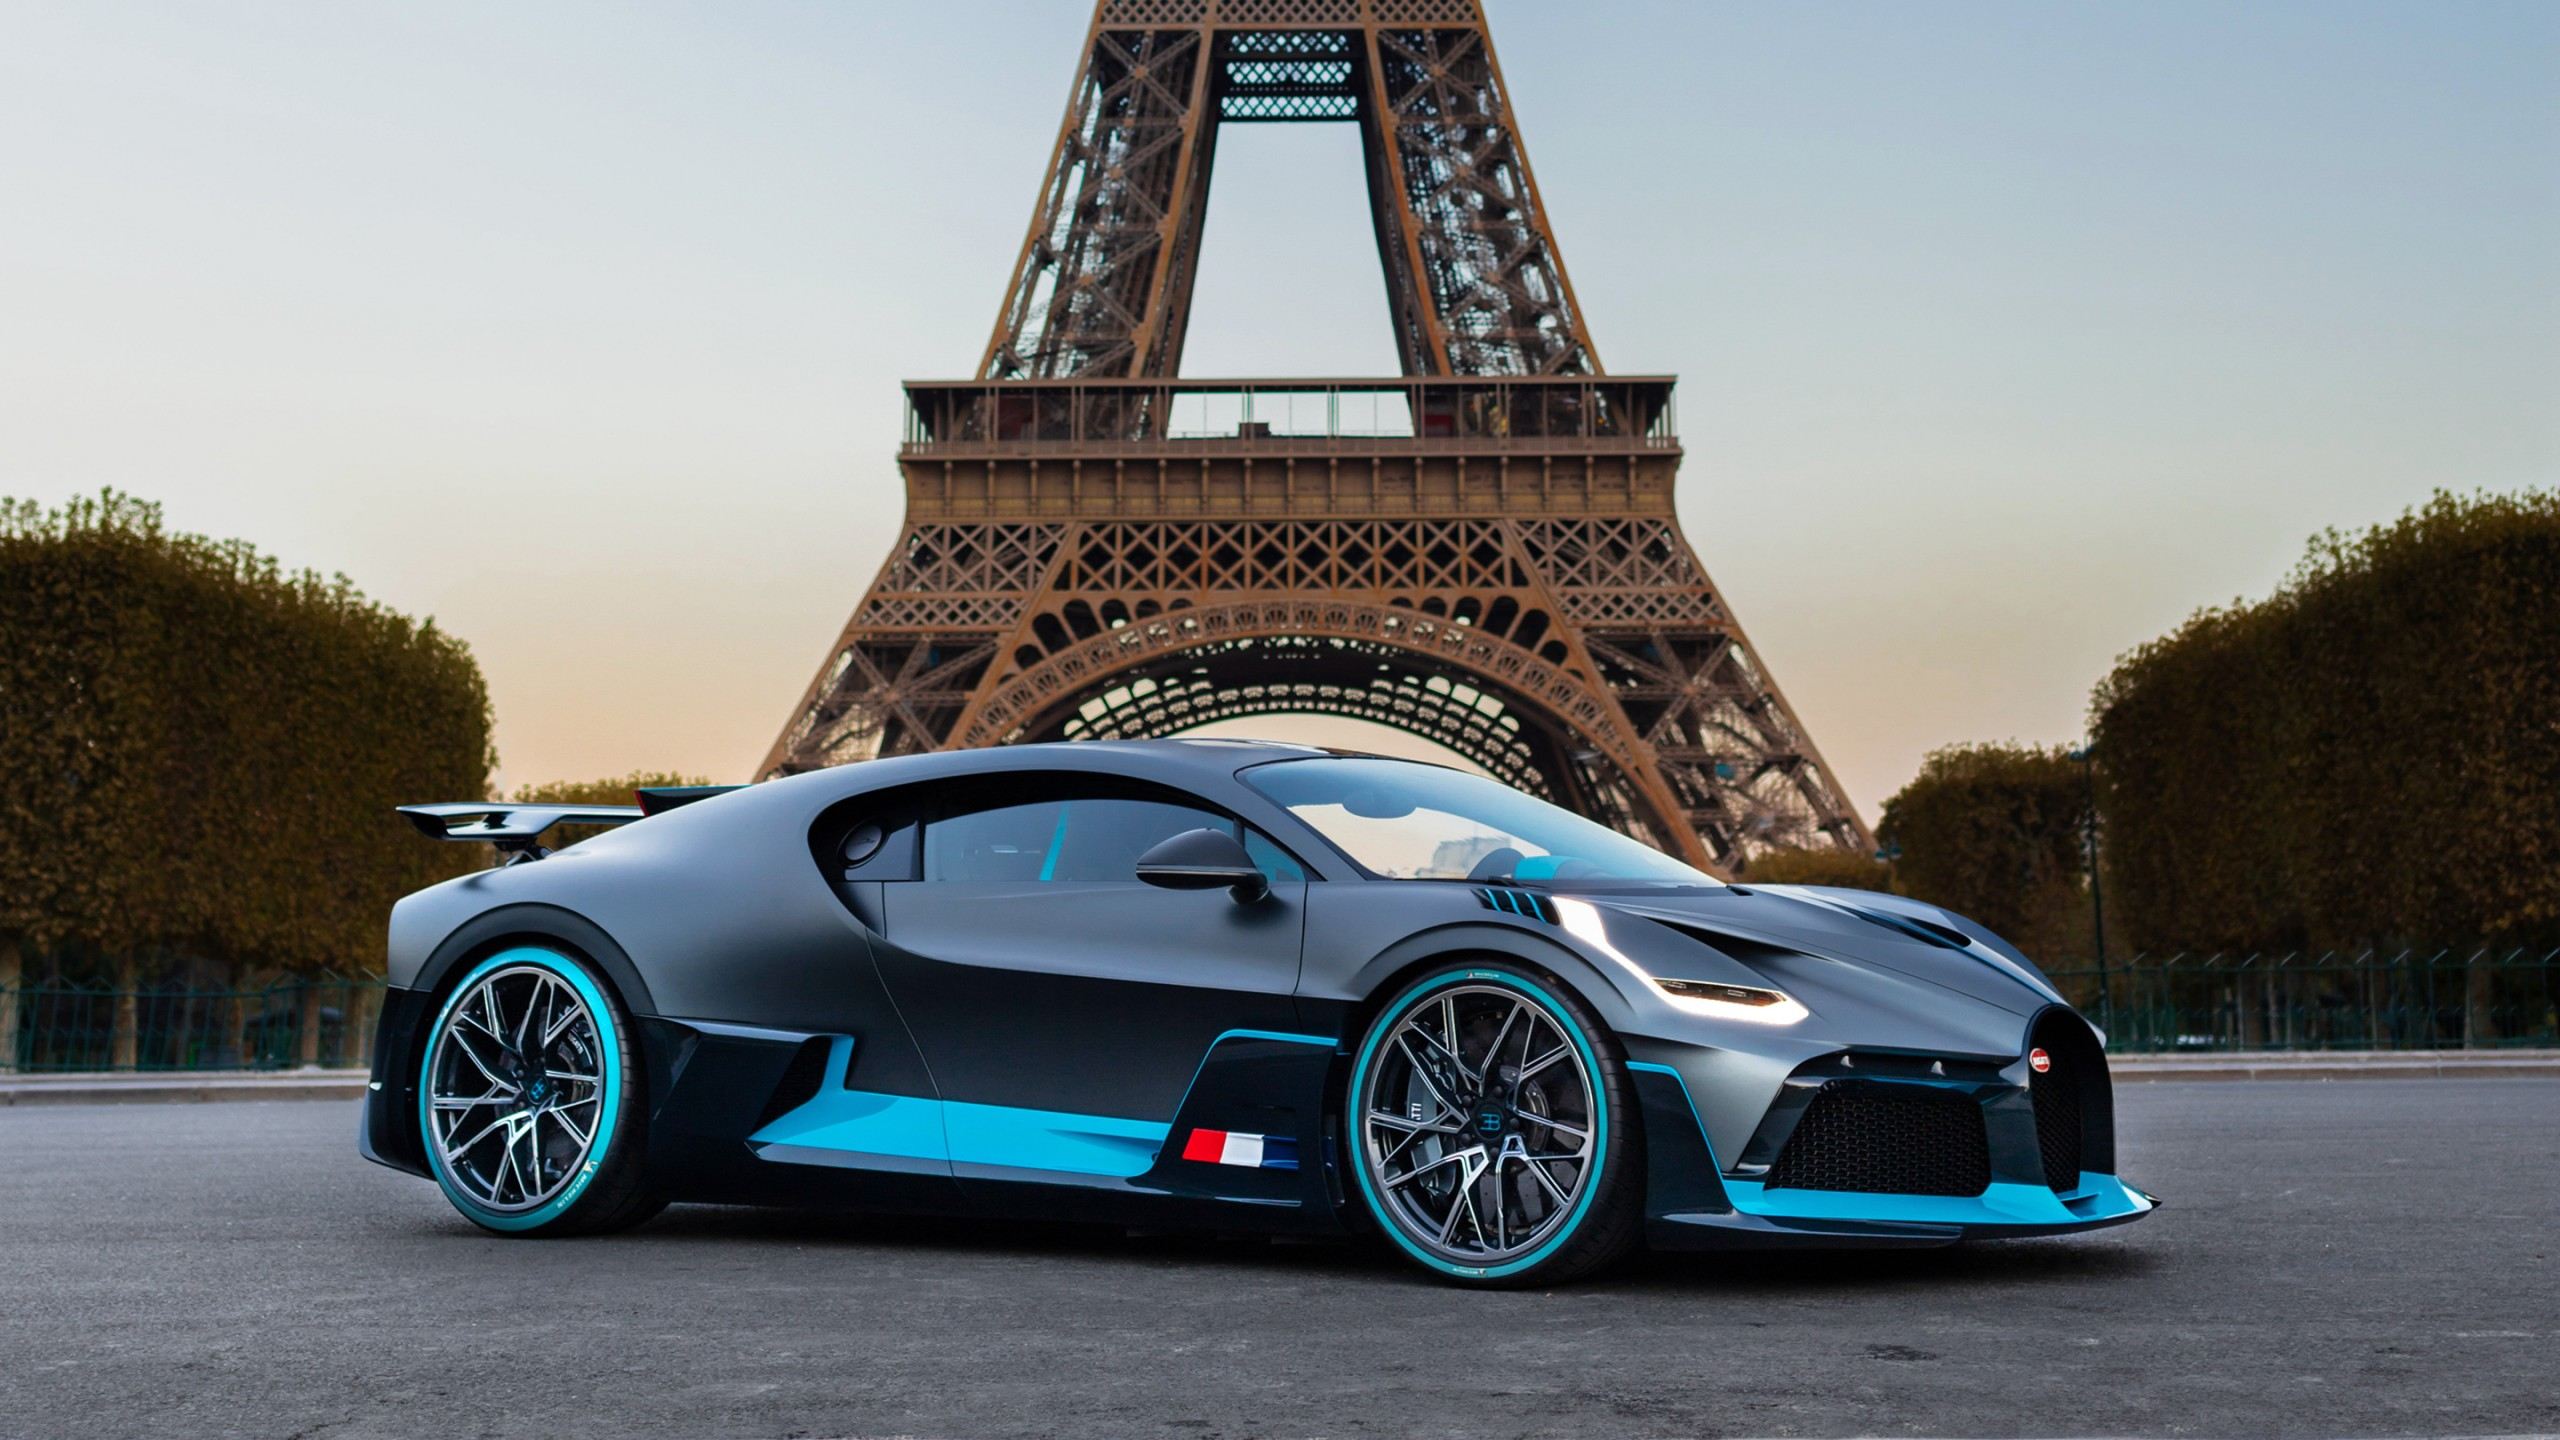 Police Car 4k Wallpaper Bugatti Divo In Paris Wallpaper Hd Car Wallpapers Id